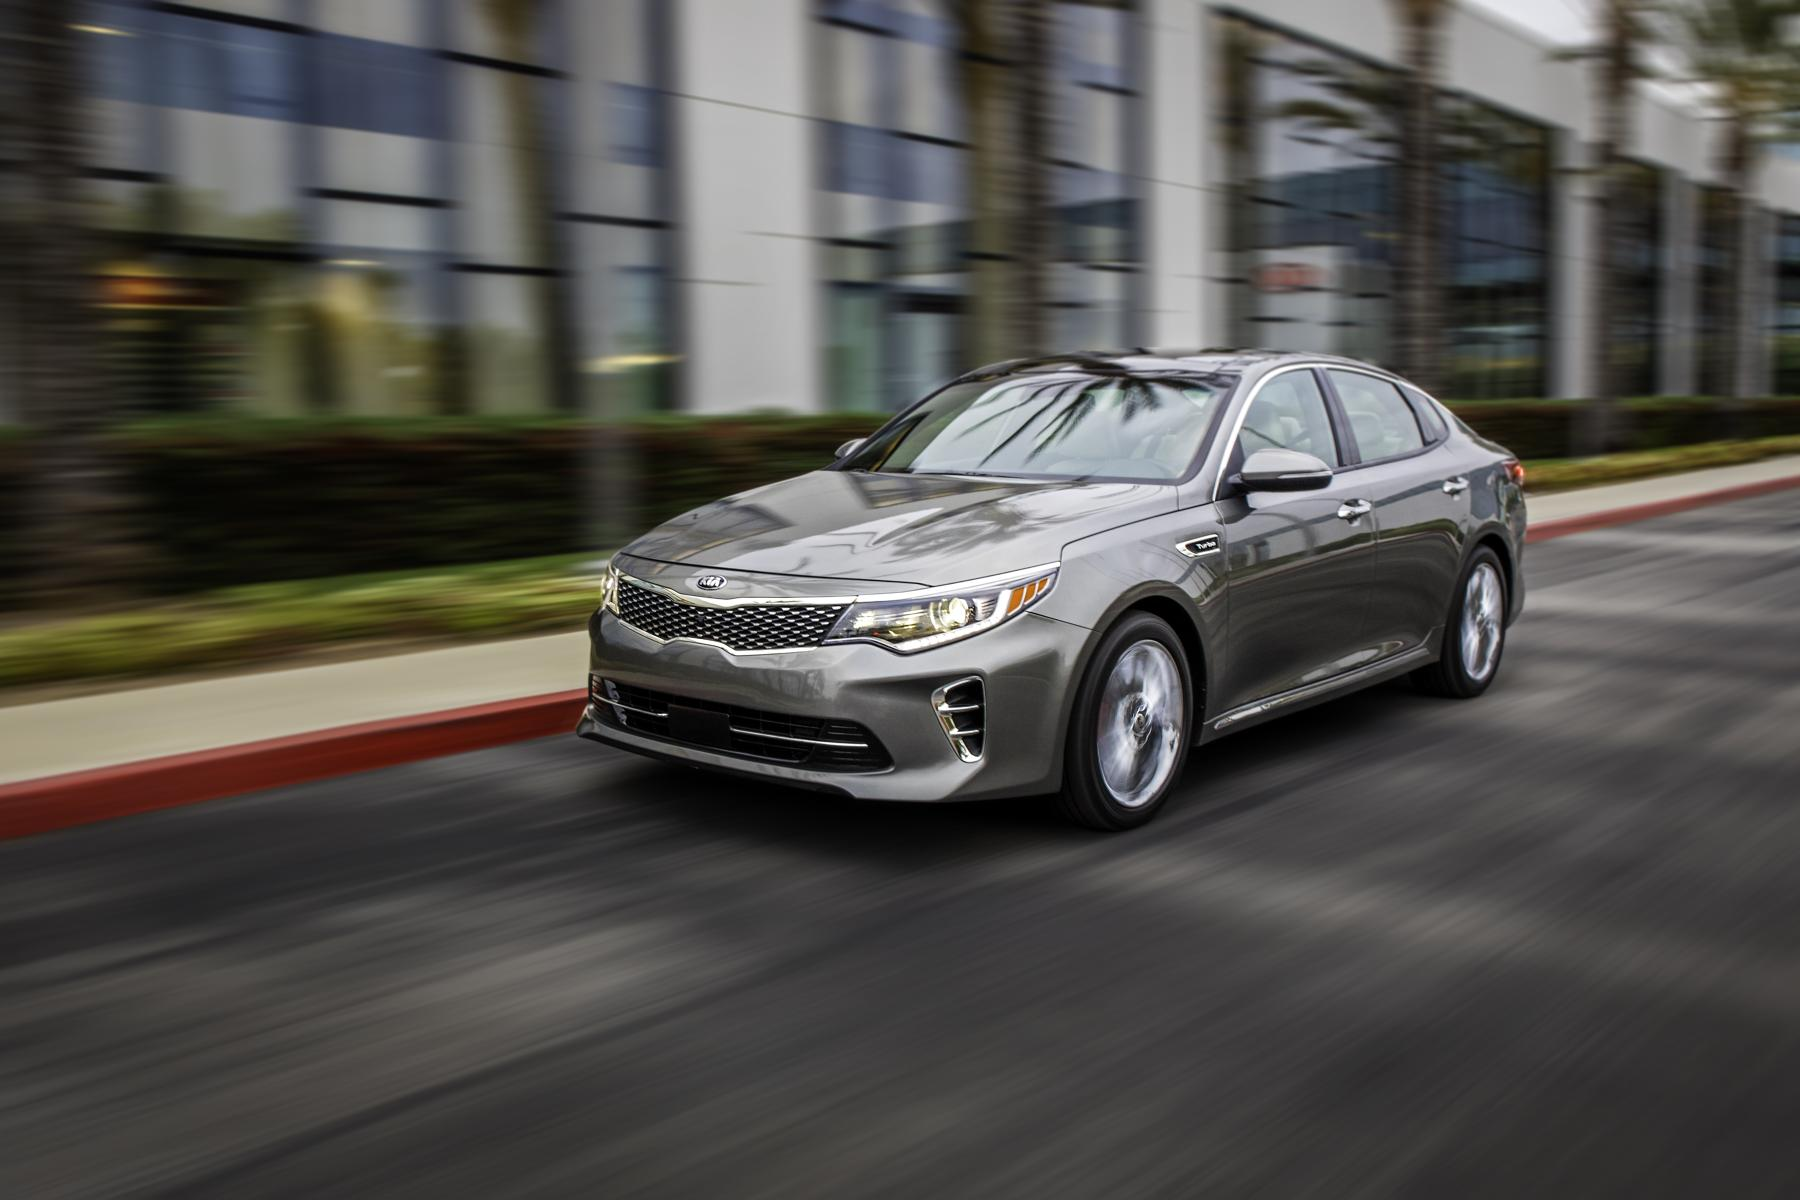 2016 kia optima revealed in us spec form with two turbocharged engines autoevolution. Black Bedroom Furniture Sets. Home Design Ideas